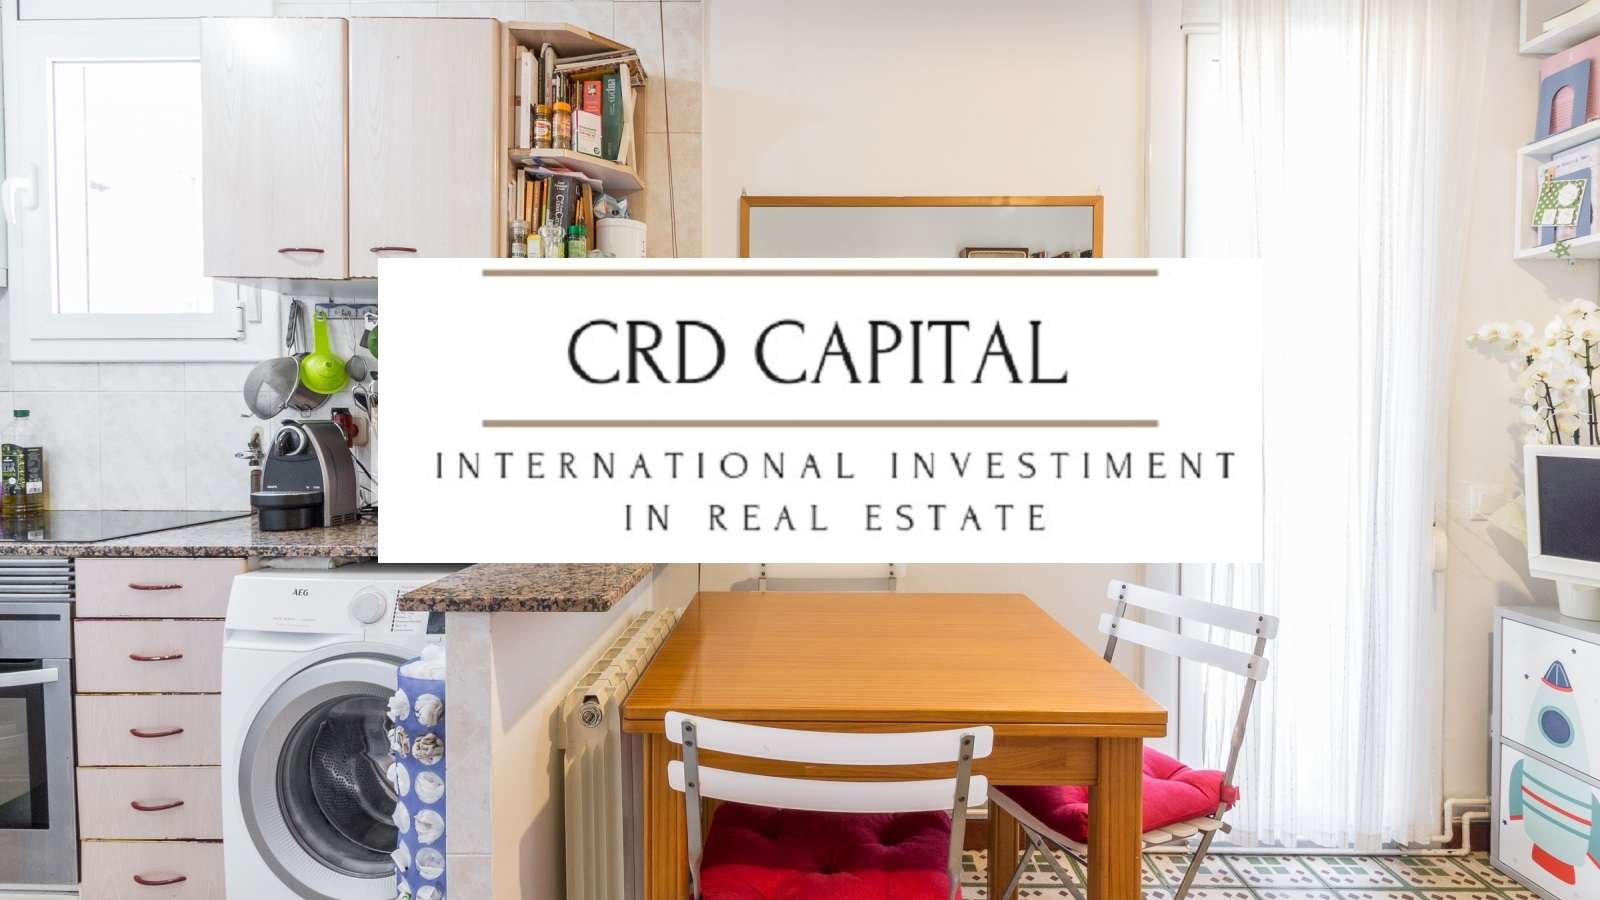 Appartamento A Barcellona Sants | CRD CAPITAL